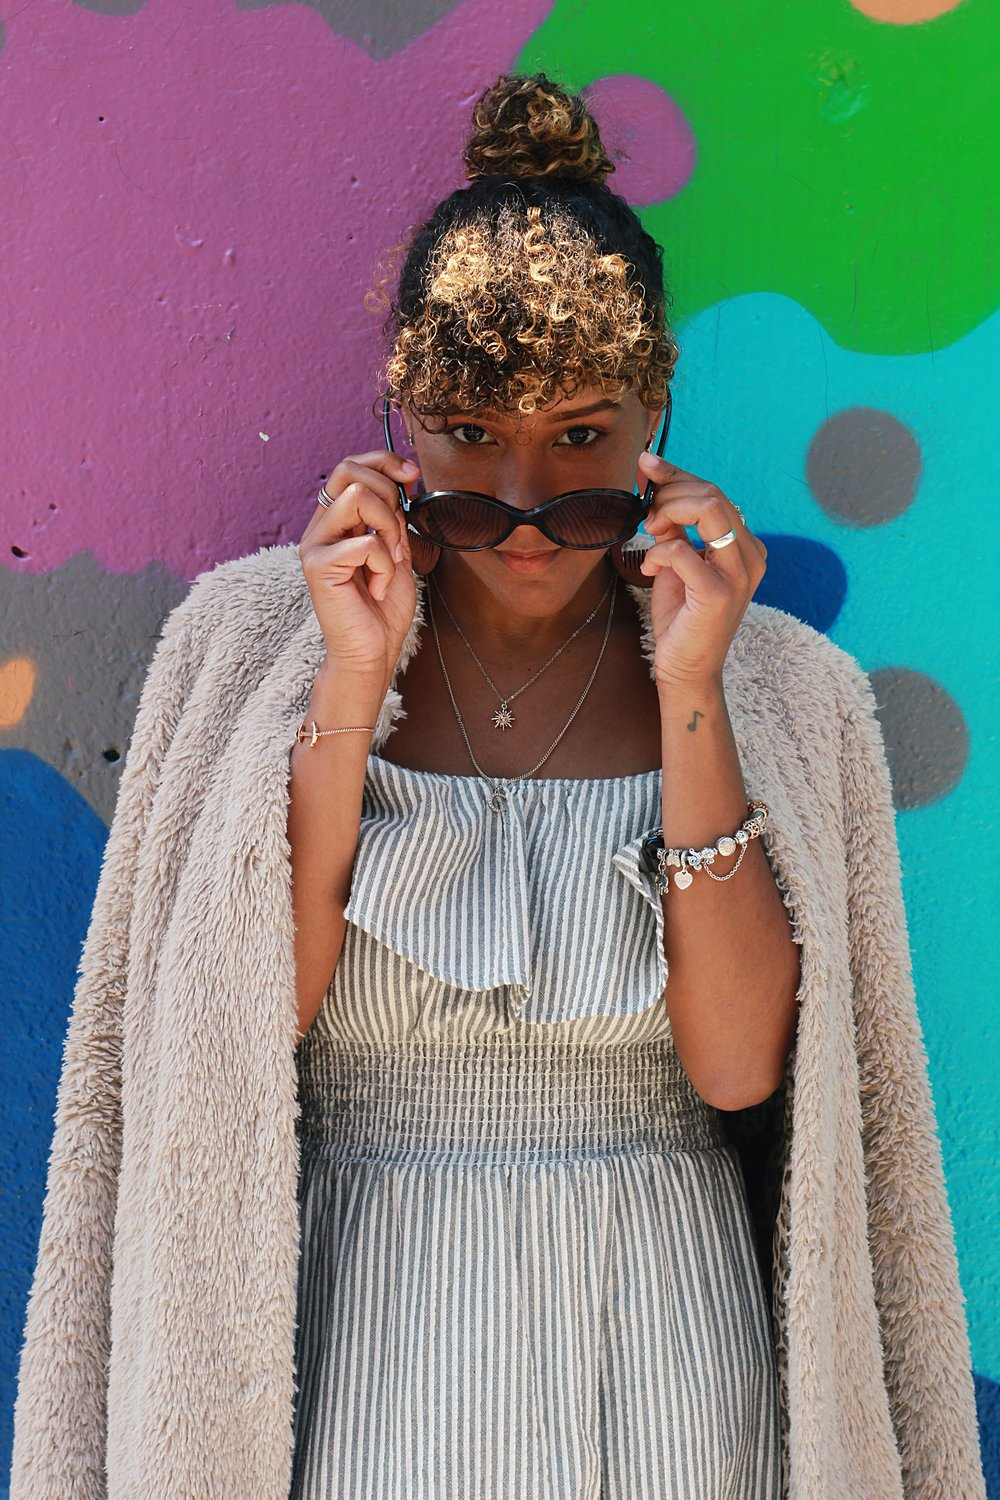 Coat: Kenneth Cole; Dress: Zara; Sunglasses: Chanel; Necklace: Forever21; Bracelet (Left): Paul Hewitt; Bracelet (Right): Pandora; Photography by Nikki Price